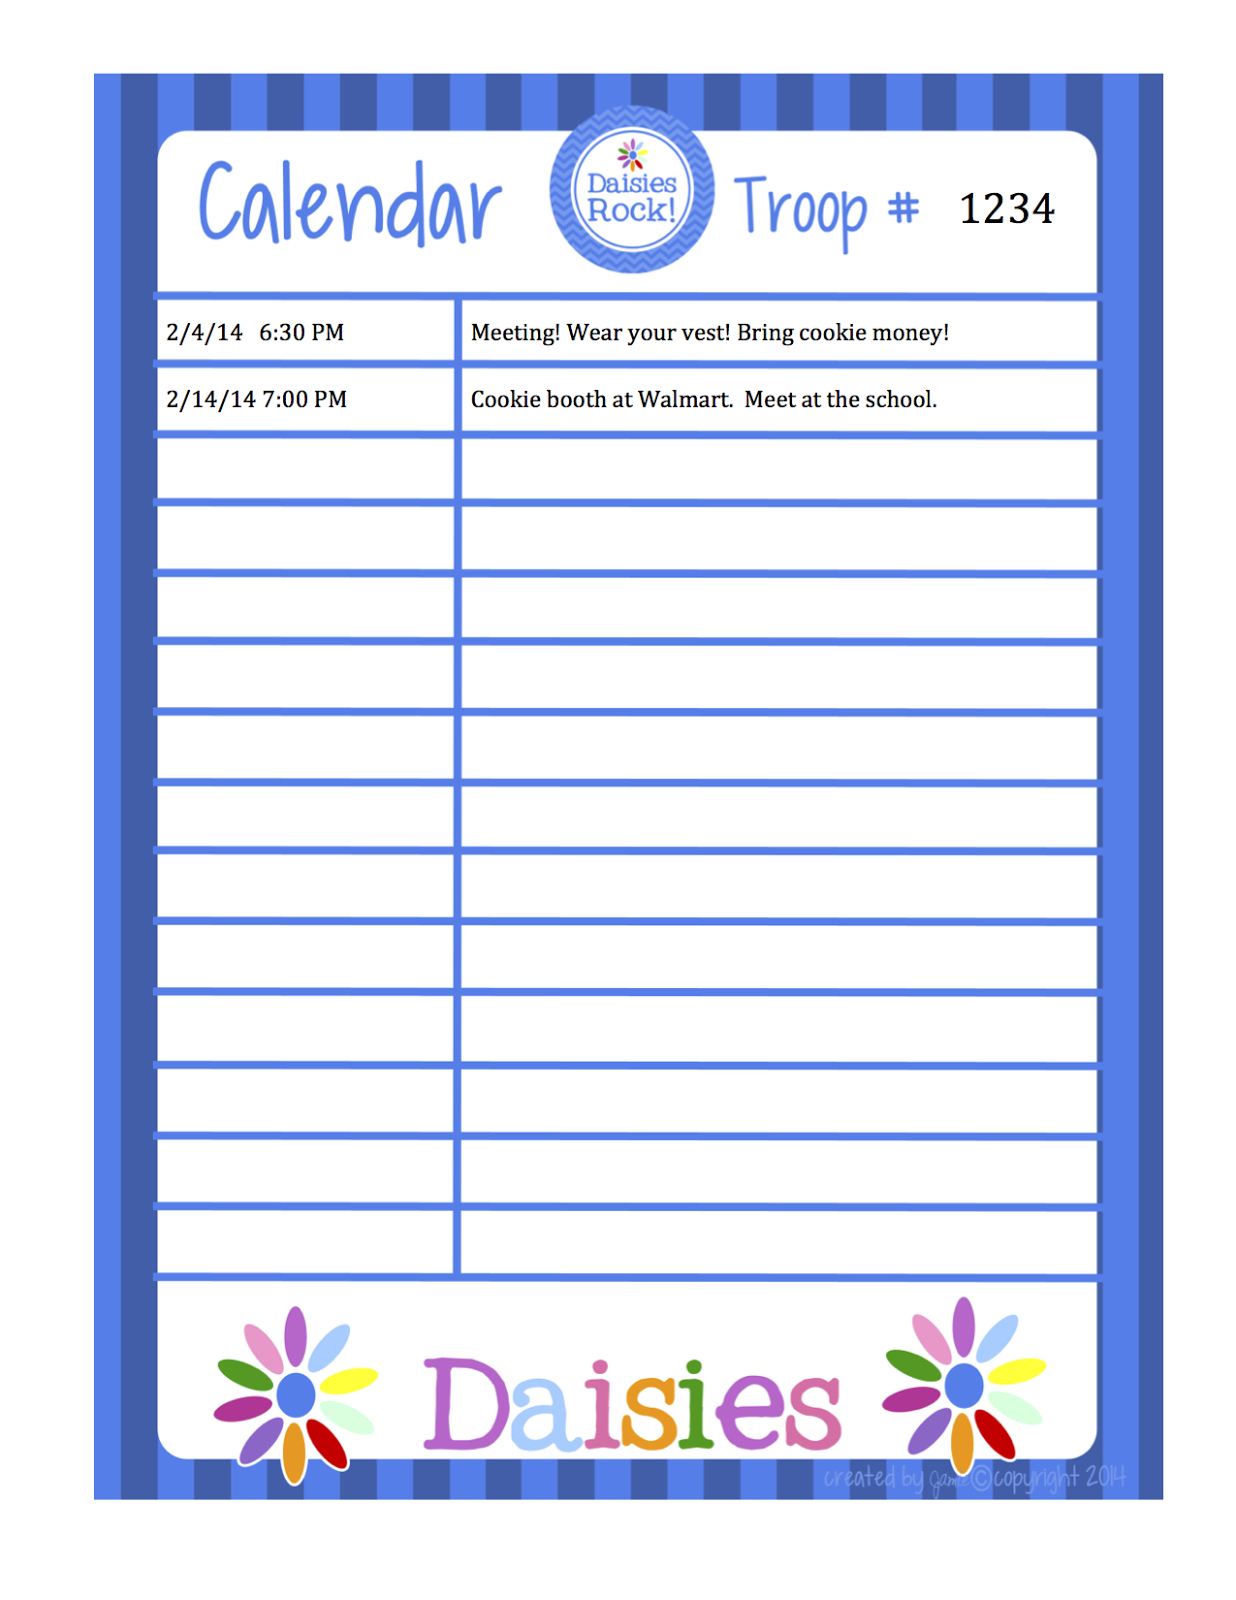 my fashionable designs girl scouts daisies calendar word format. Black Bedroom Furniture Sets. Home Design Ideas